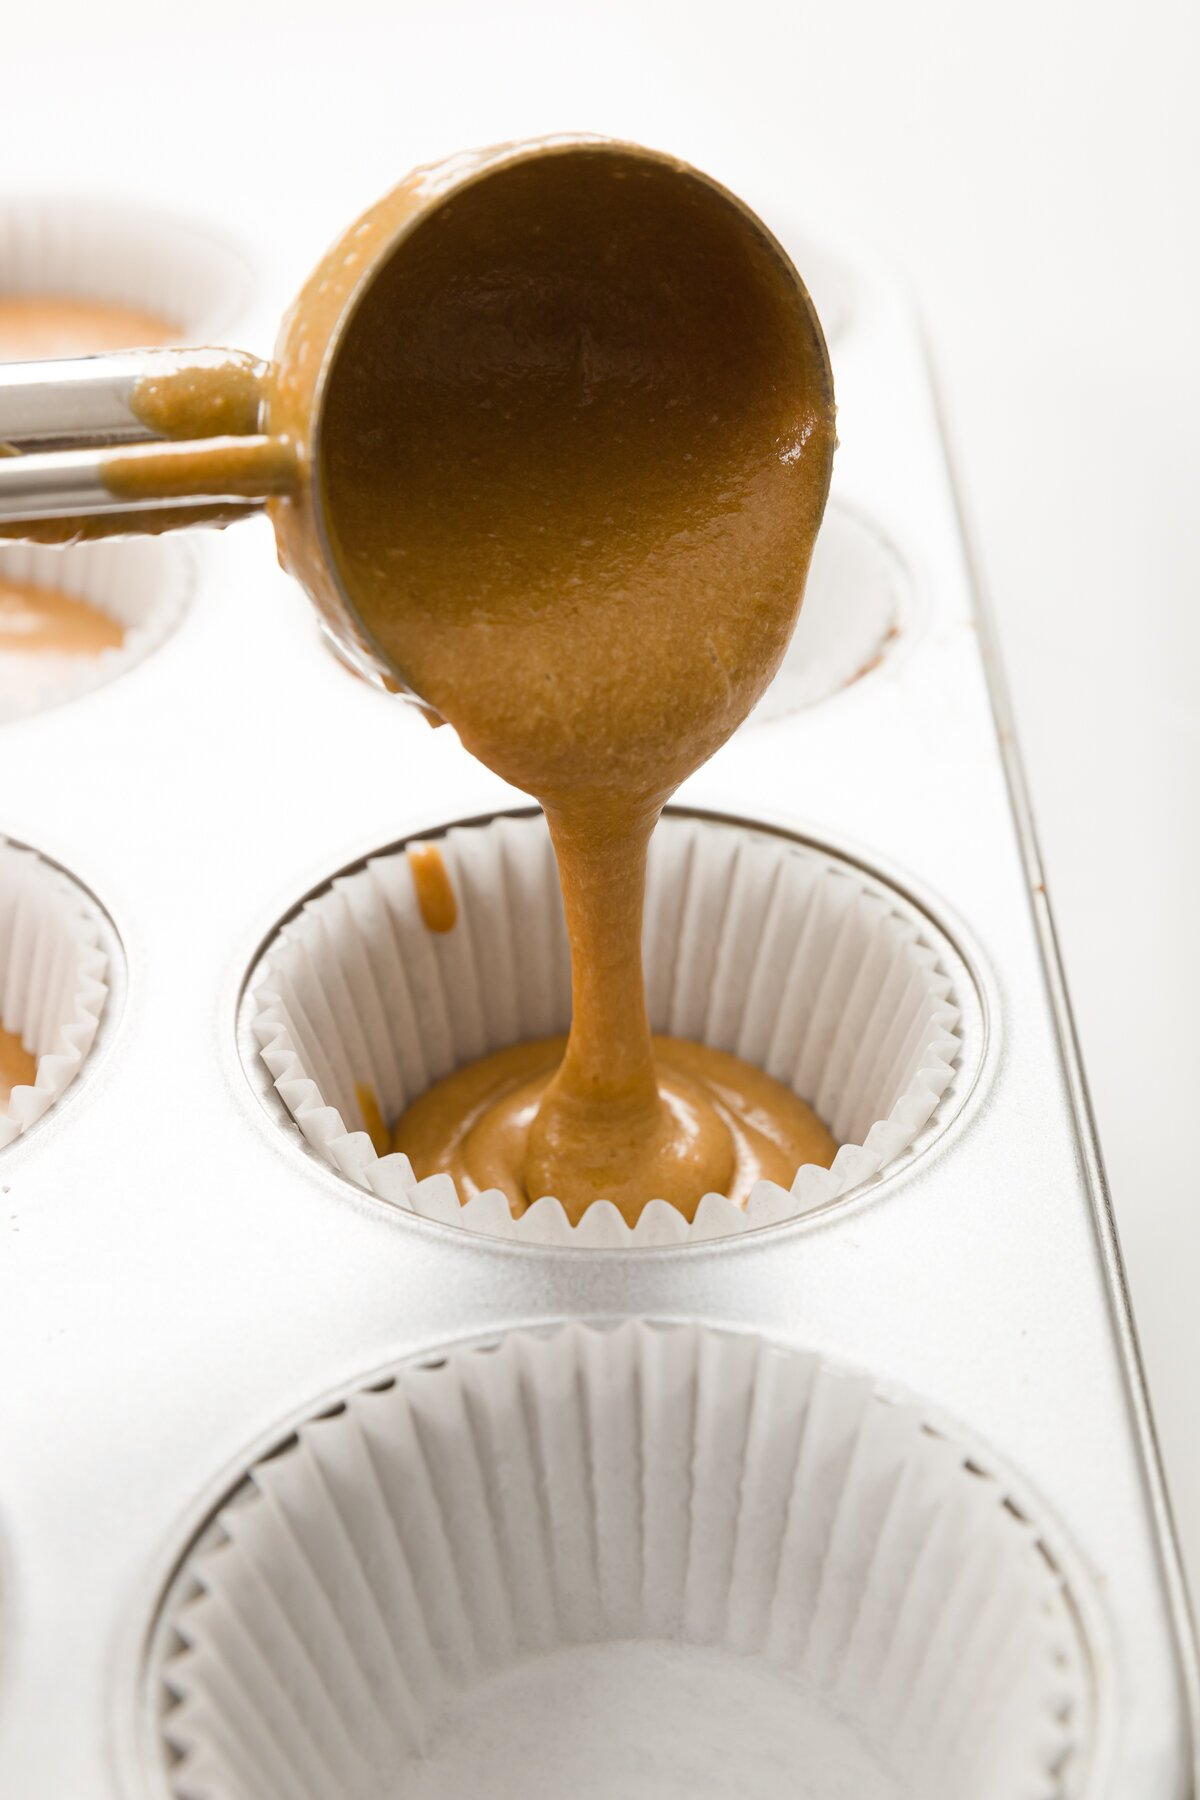 Filling cupcake liner with an ice cream scoop